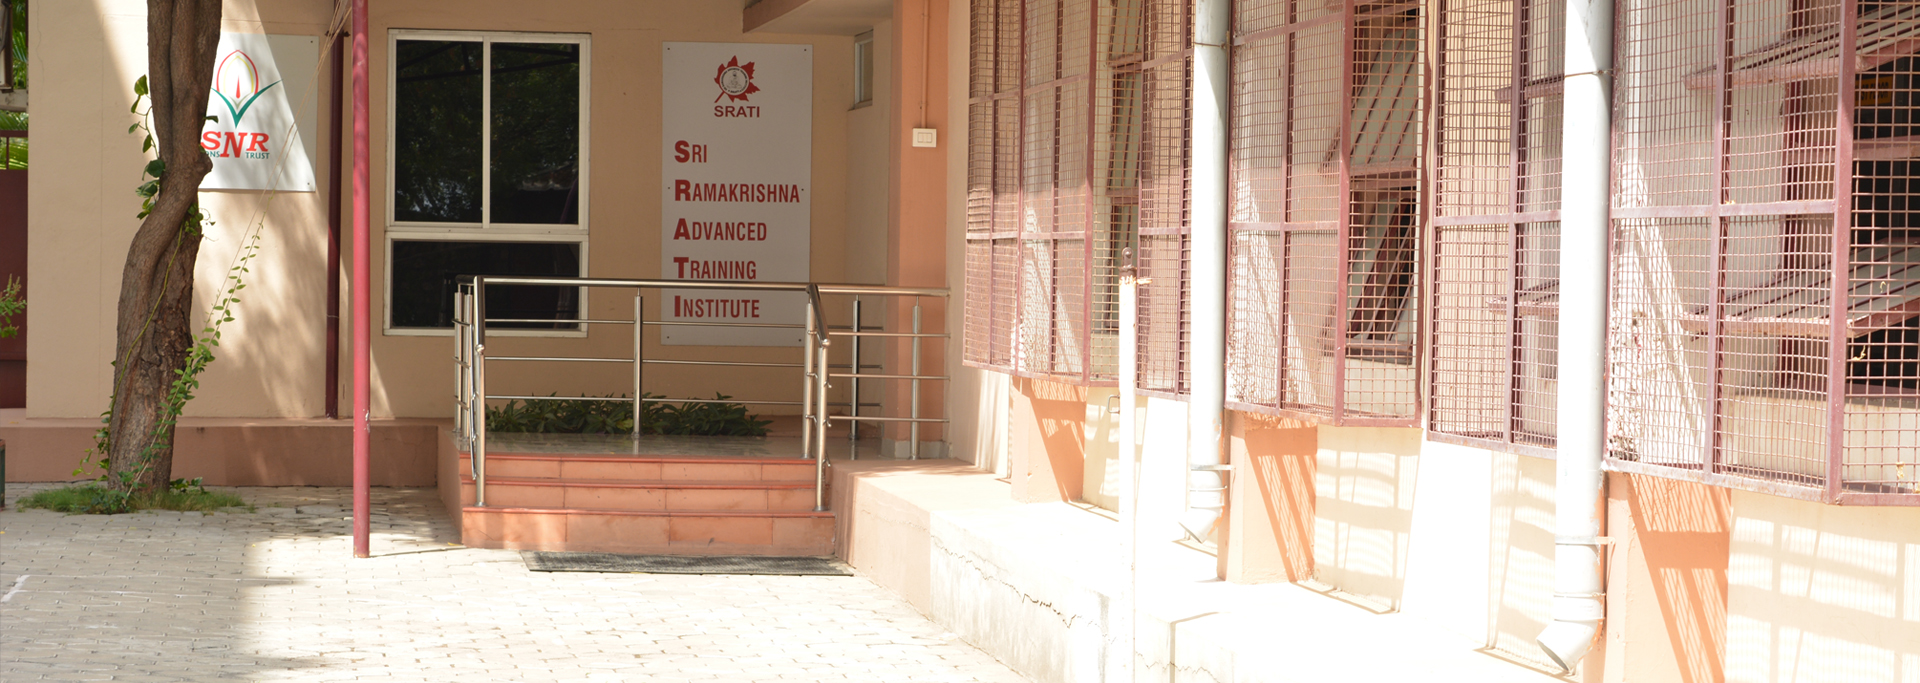 Sri Ramakrishna Advanced Training Institute